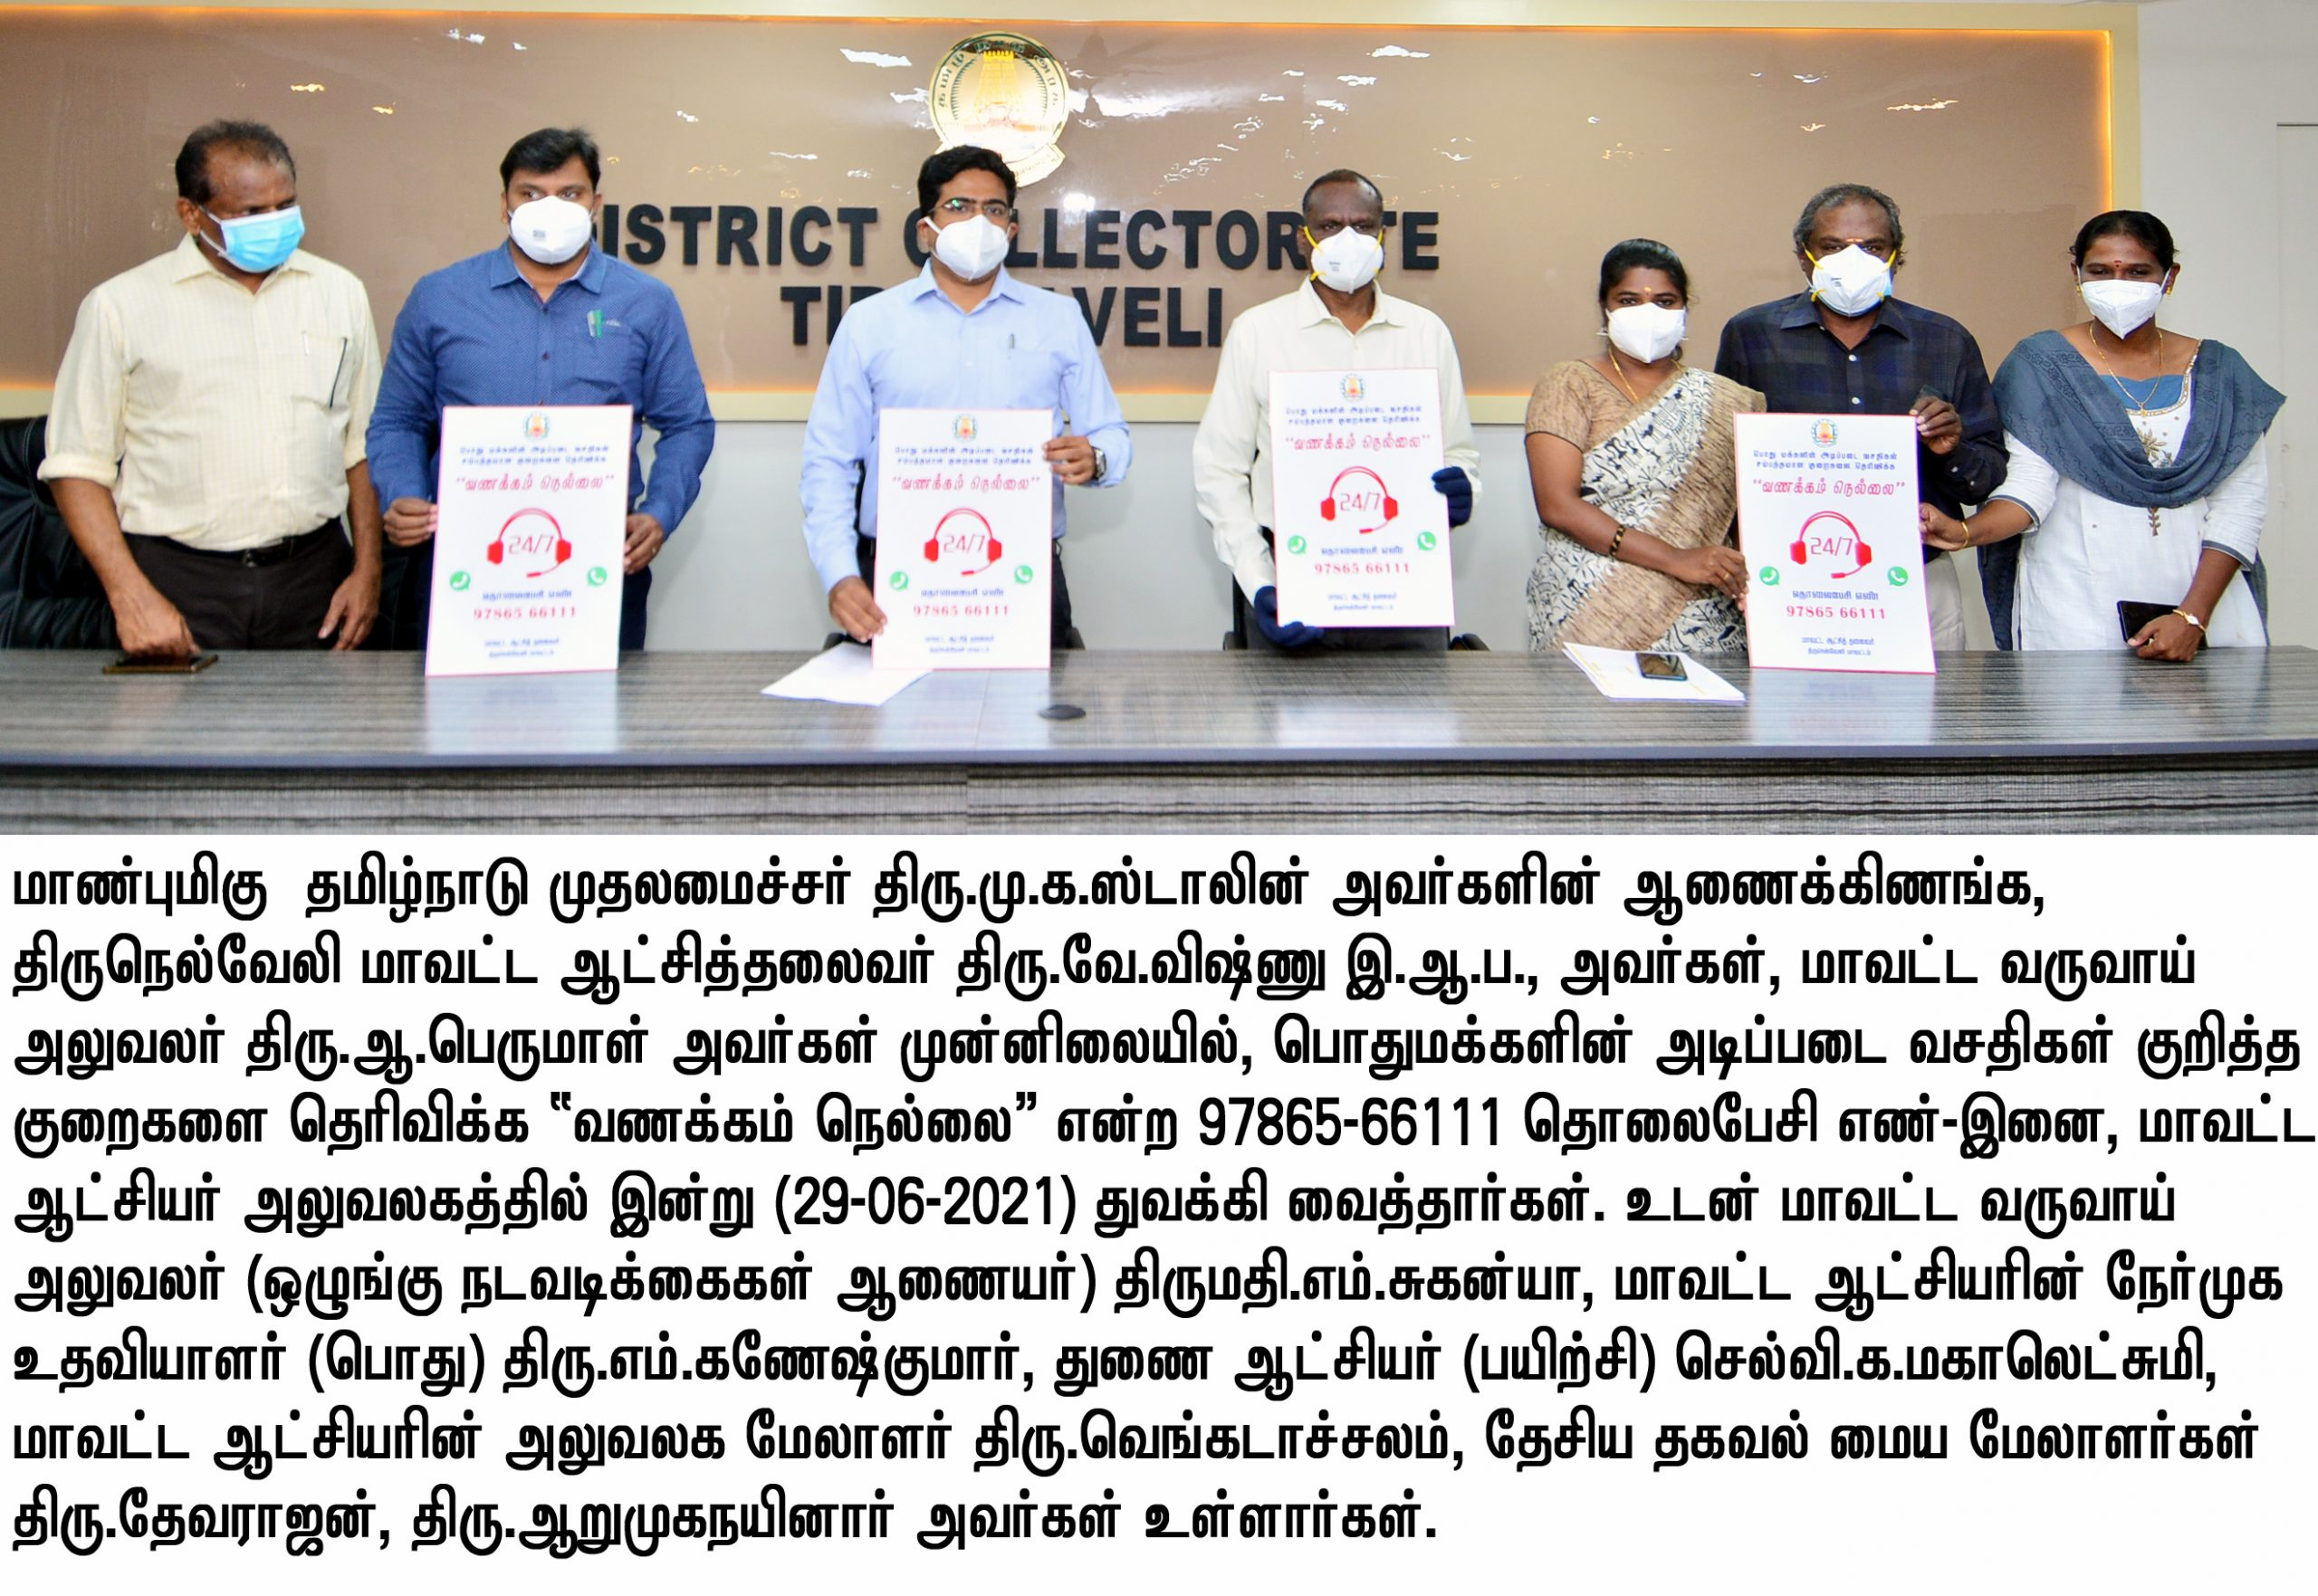 District Collector initiated a telephone number called